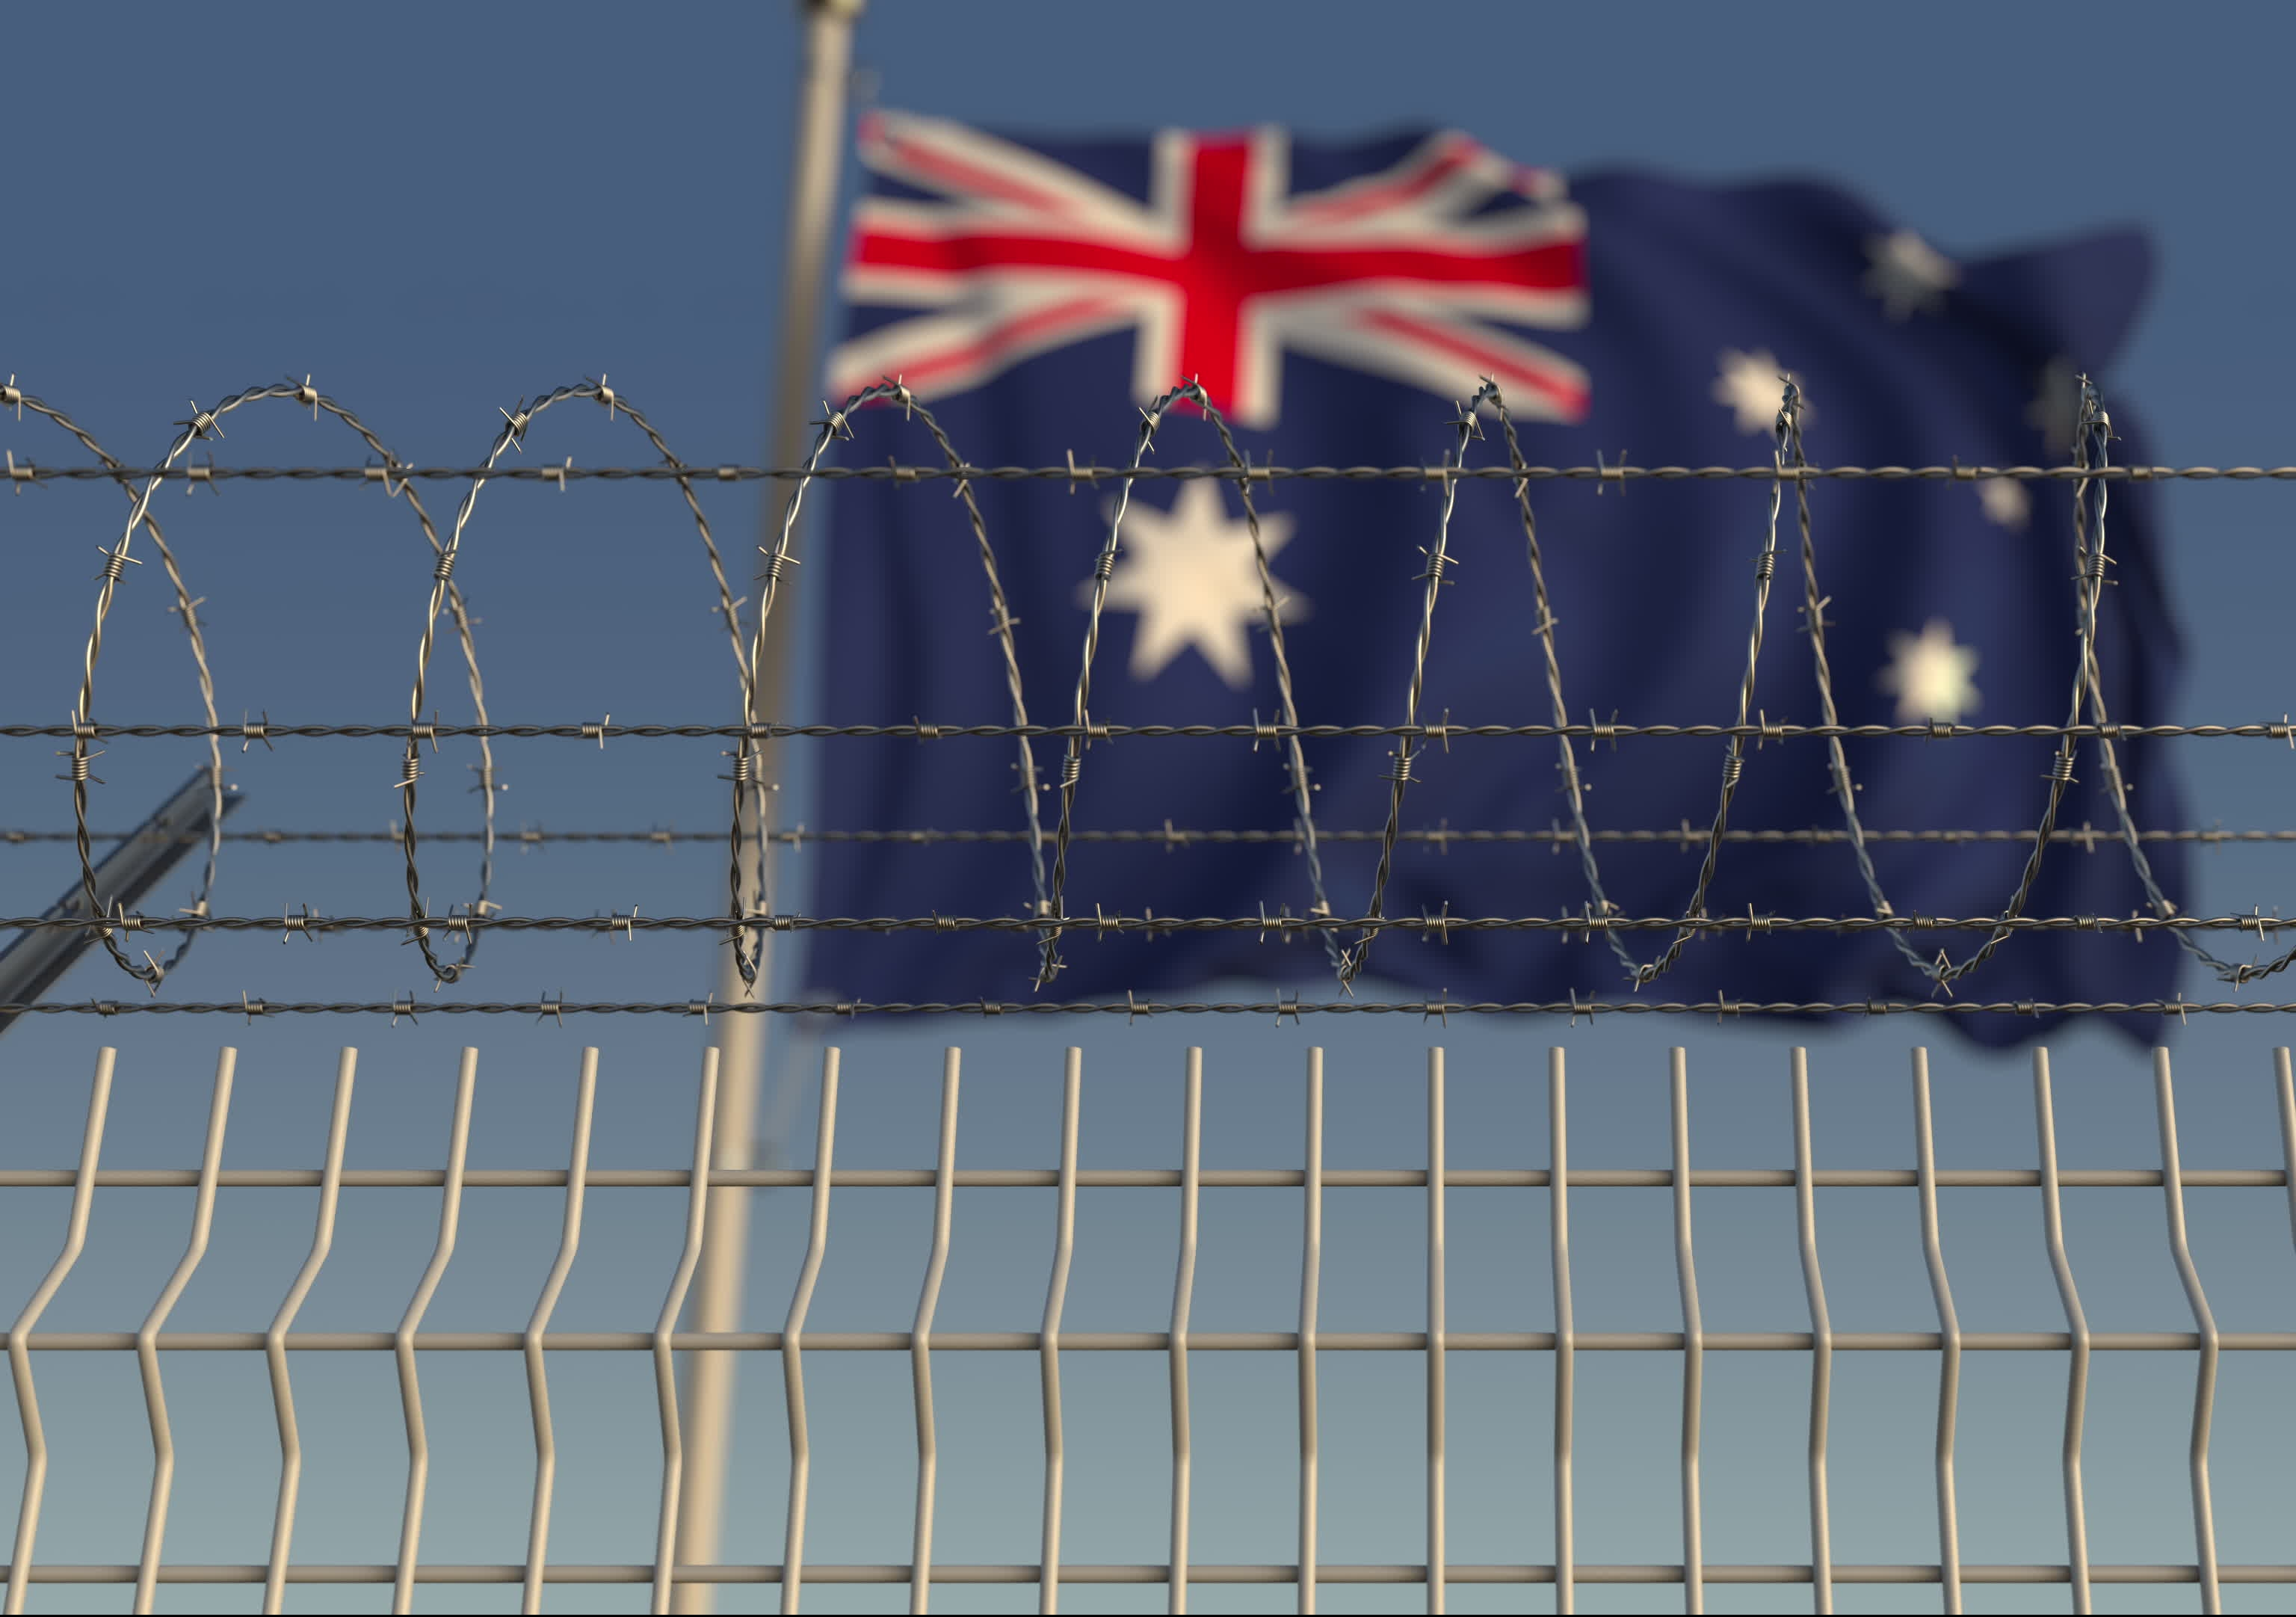 A blurred Australian flag waving behind a barbed wire fence. Image: Shutterstock